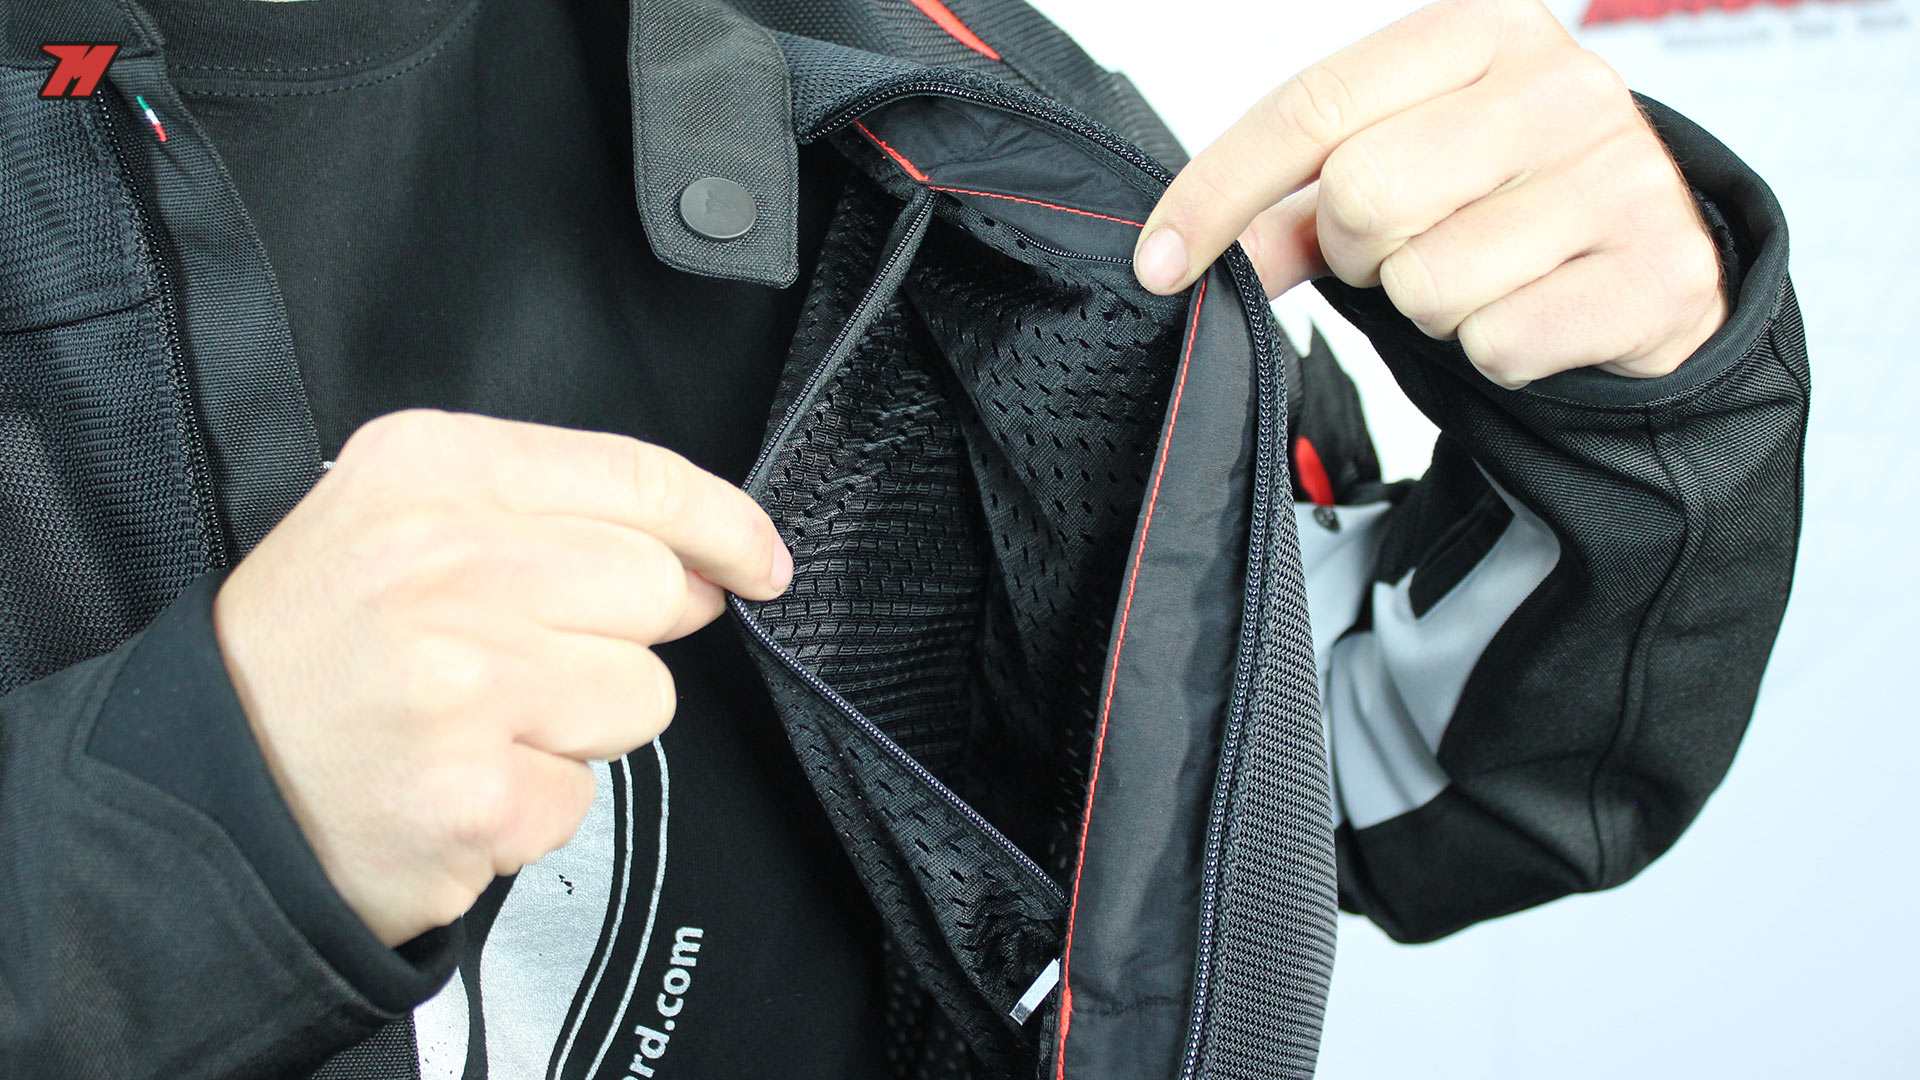 Review Dainese Air Master Tex A Jacket For Spring 183 Motocard